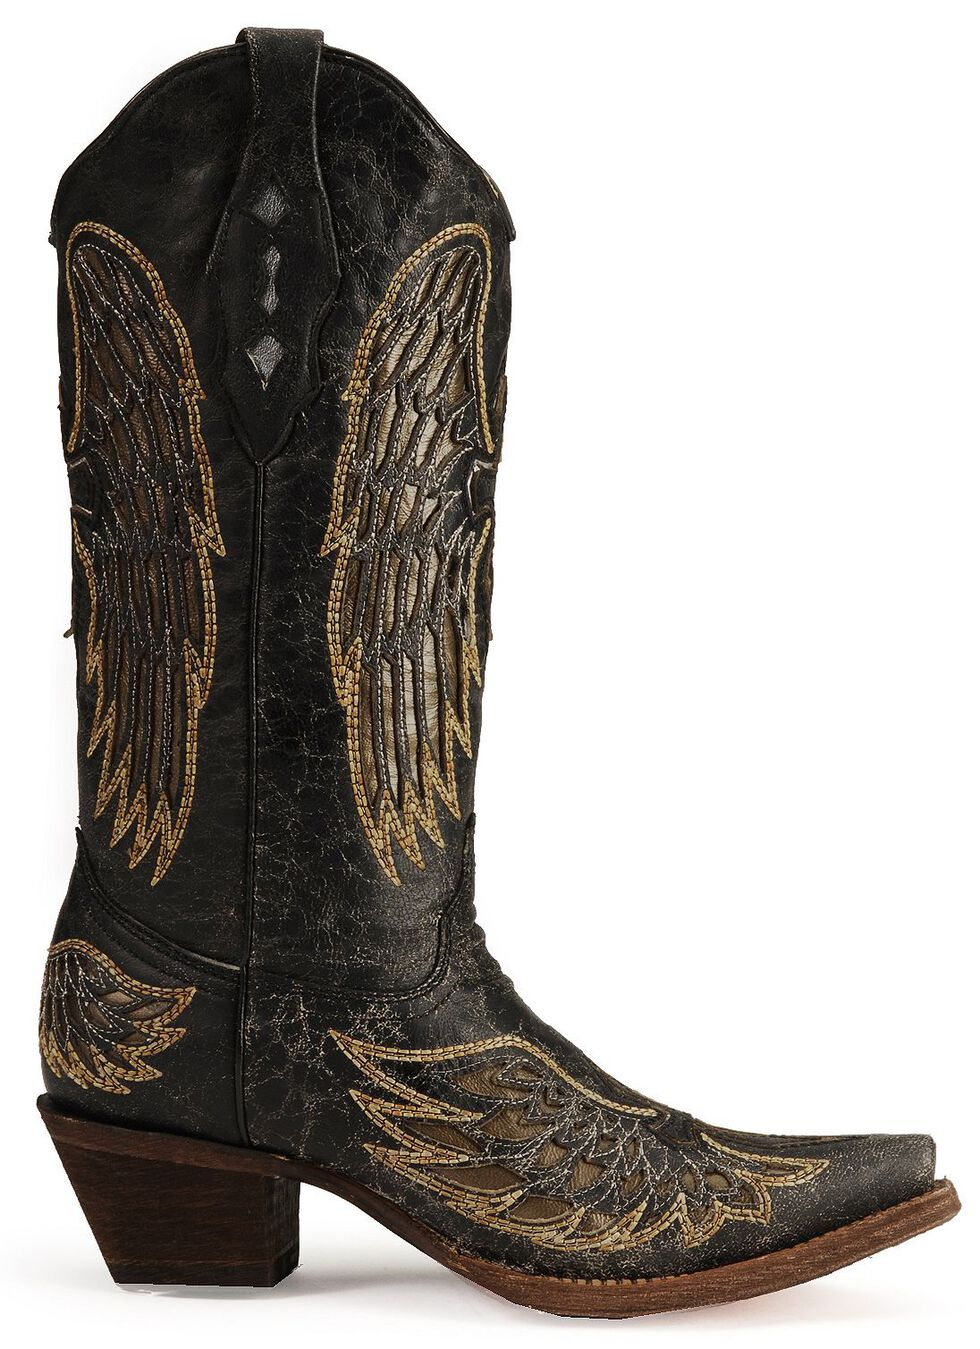 Corral Angel Wing Cross Cowgirl Boots - Snip Toe, Black, hi-res